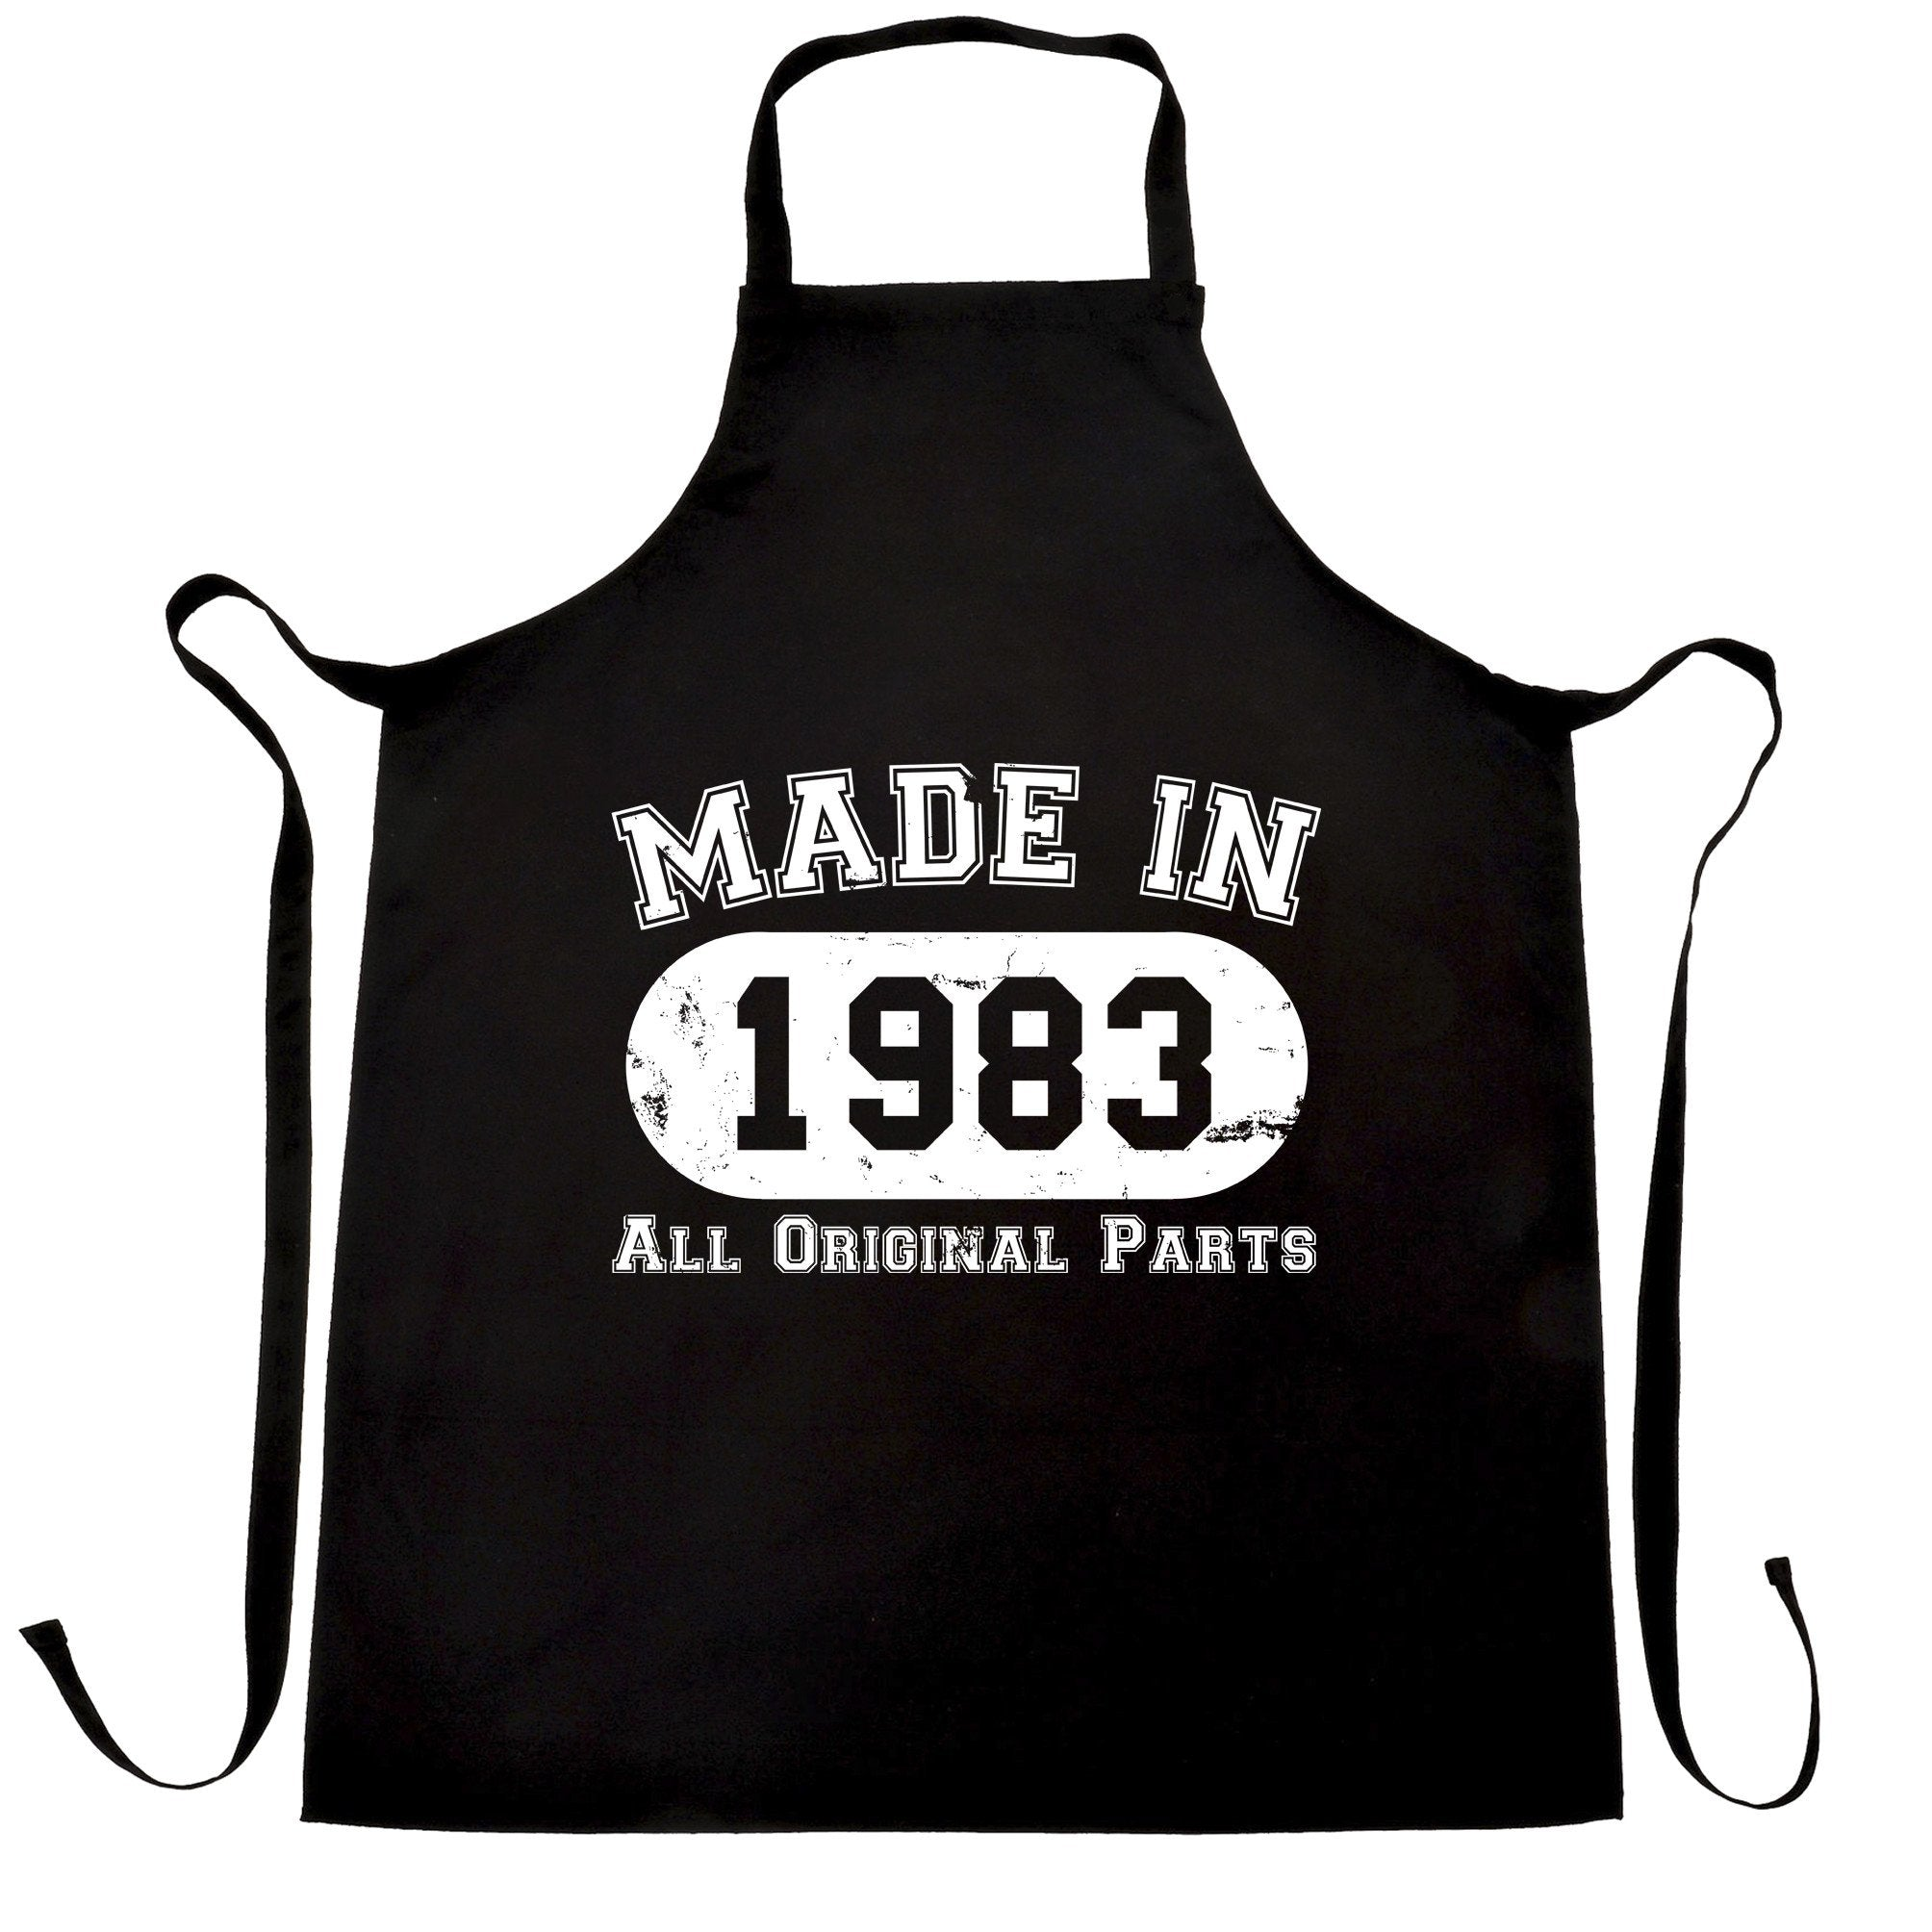 Made in 1983 All Original Parts Apron [Distressed]